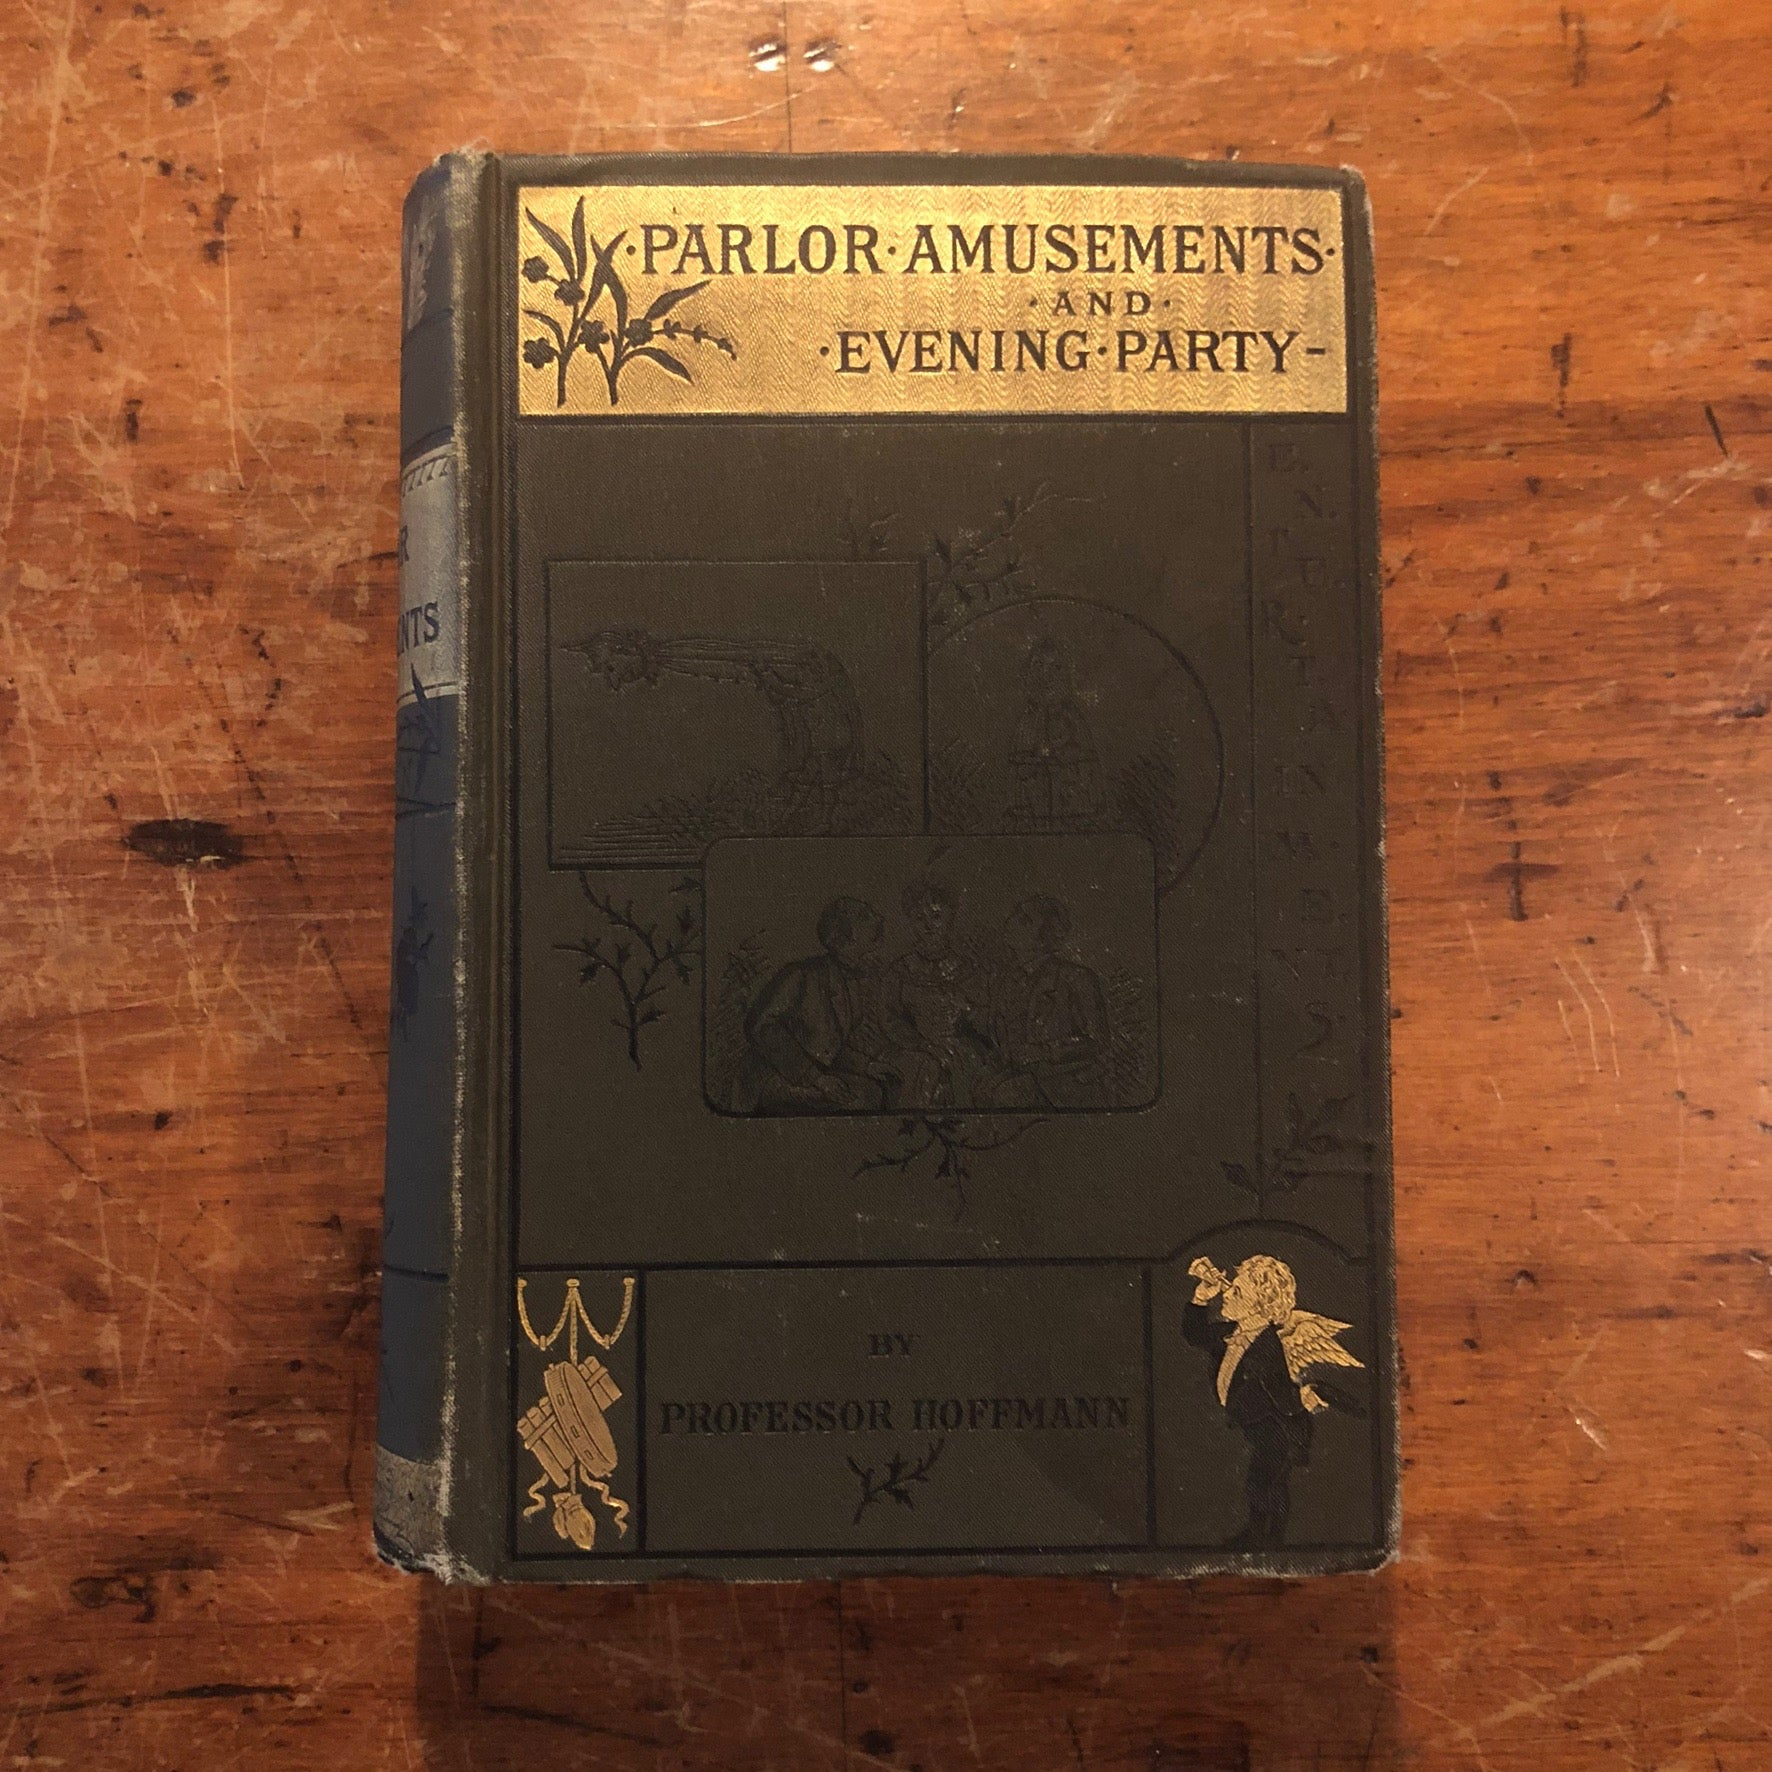 Rare Parlor Amusements and Evening Party Entertainments Book by Professor Hoffman.- Late 1800s  -Weird Games - Bizarre 19th Century